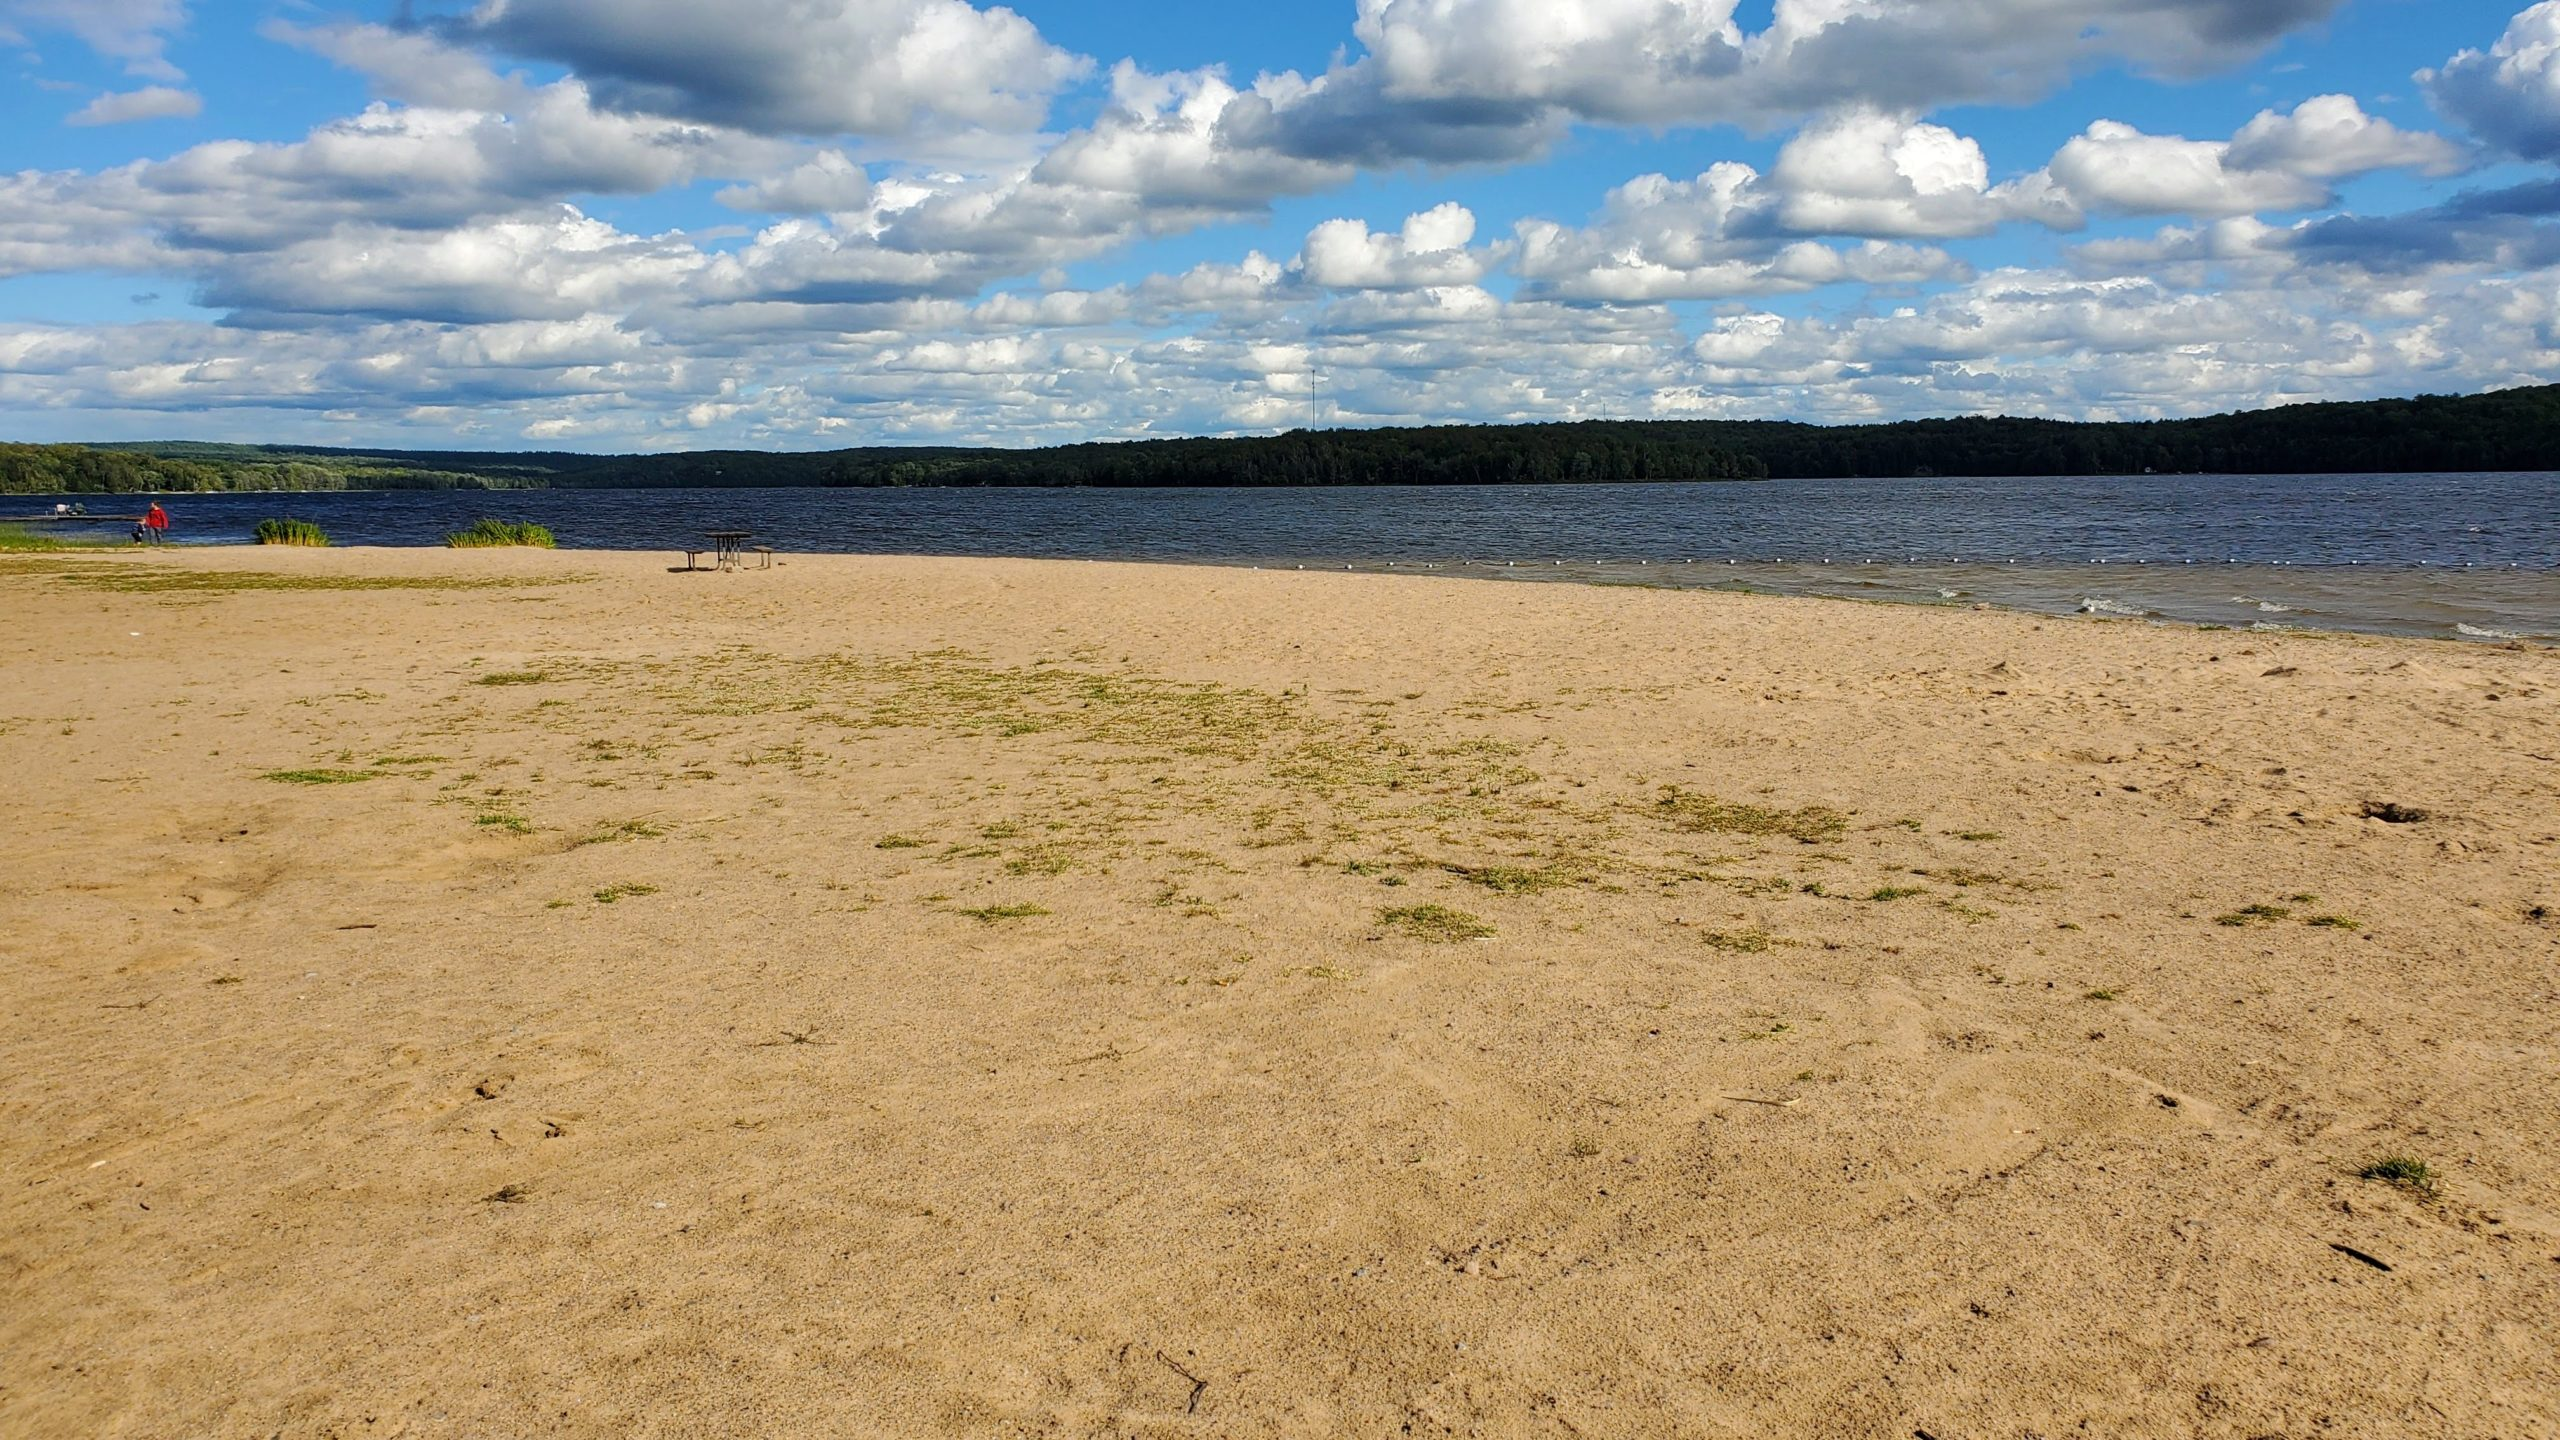 View of Putts Point Beach for my Restoule Provincial Park Review